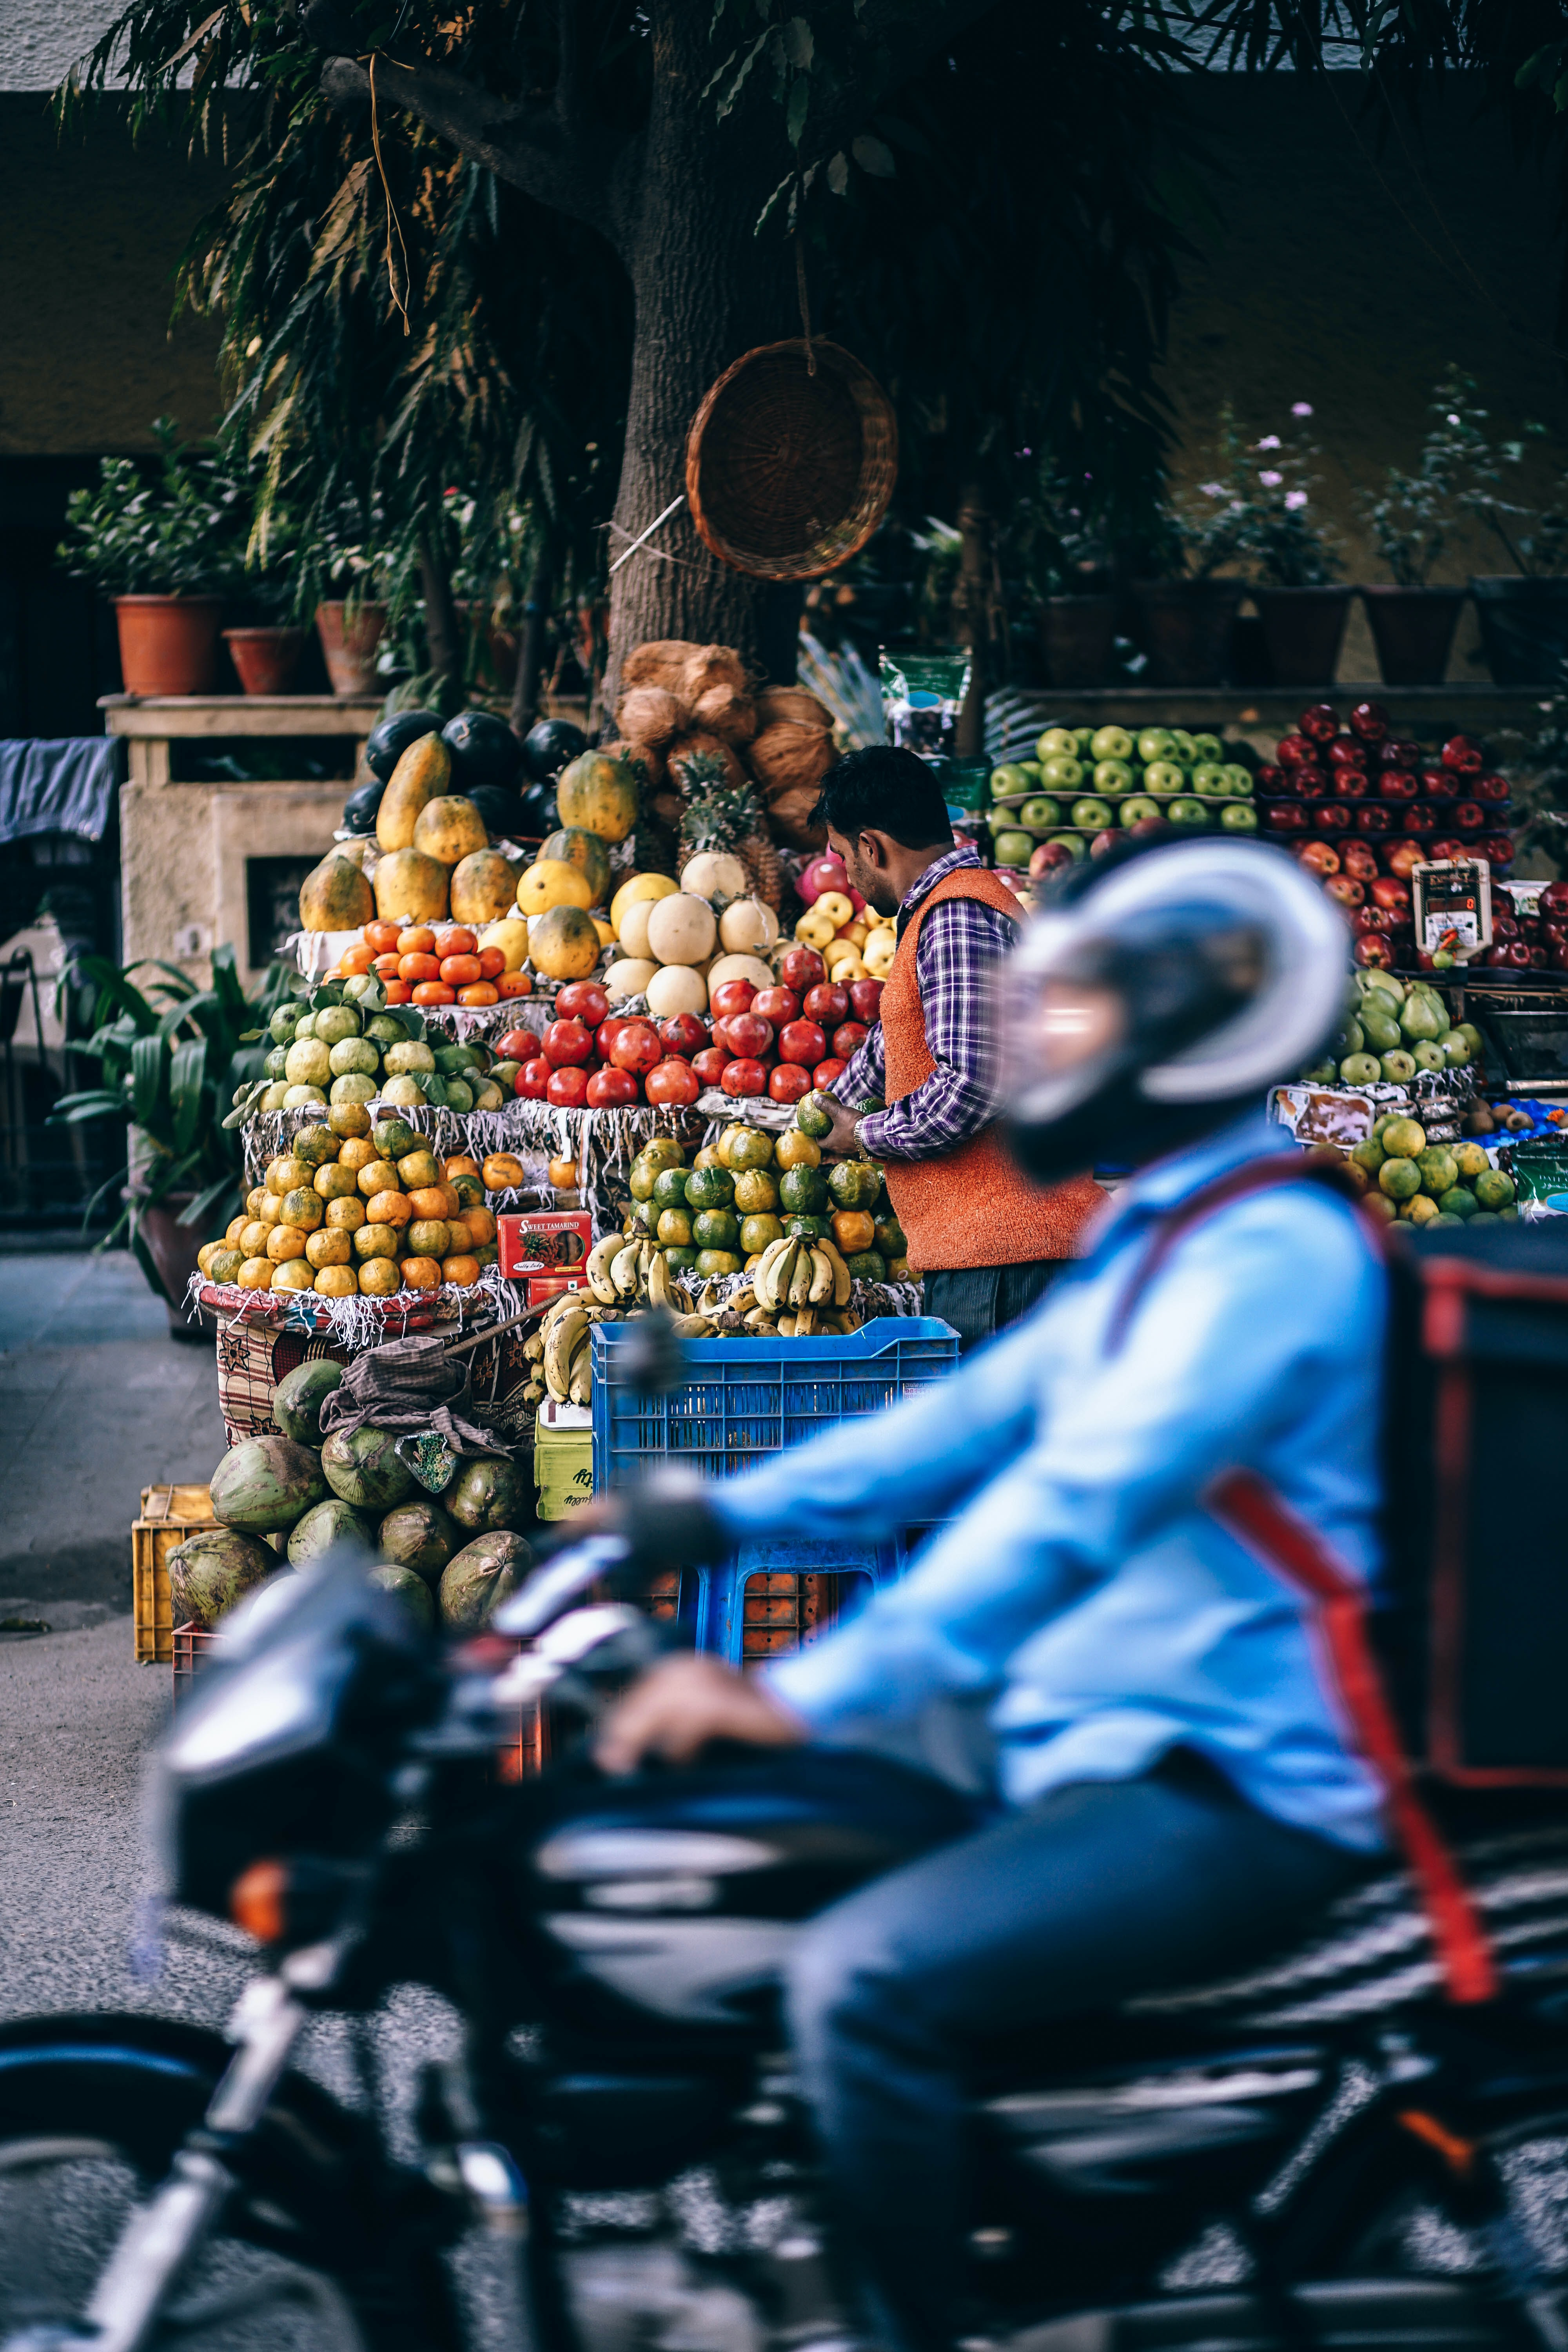 Motorcyclist rides past a street vendor stand with fresh fruits and vegetables